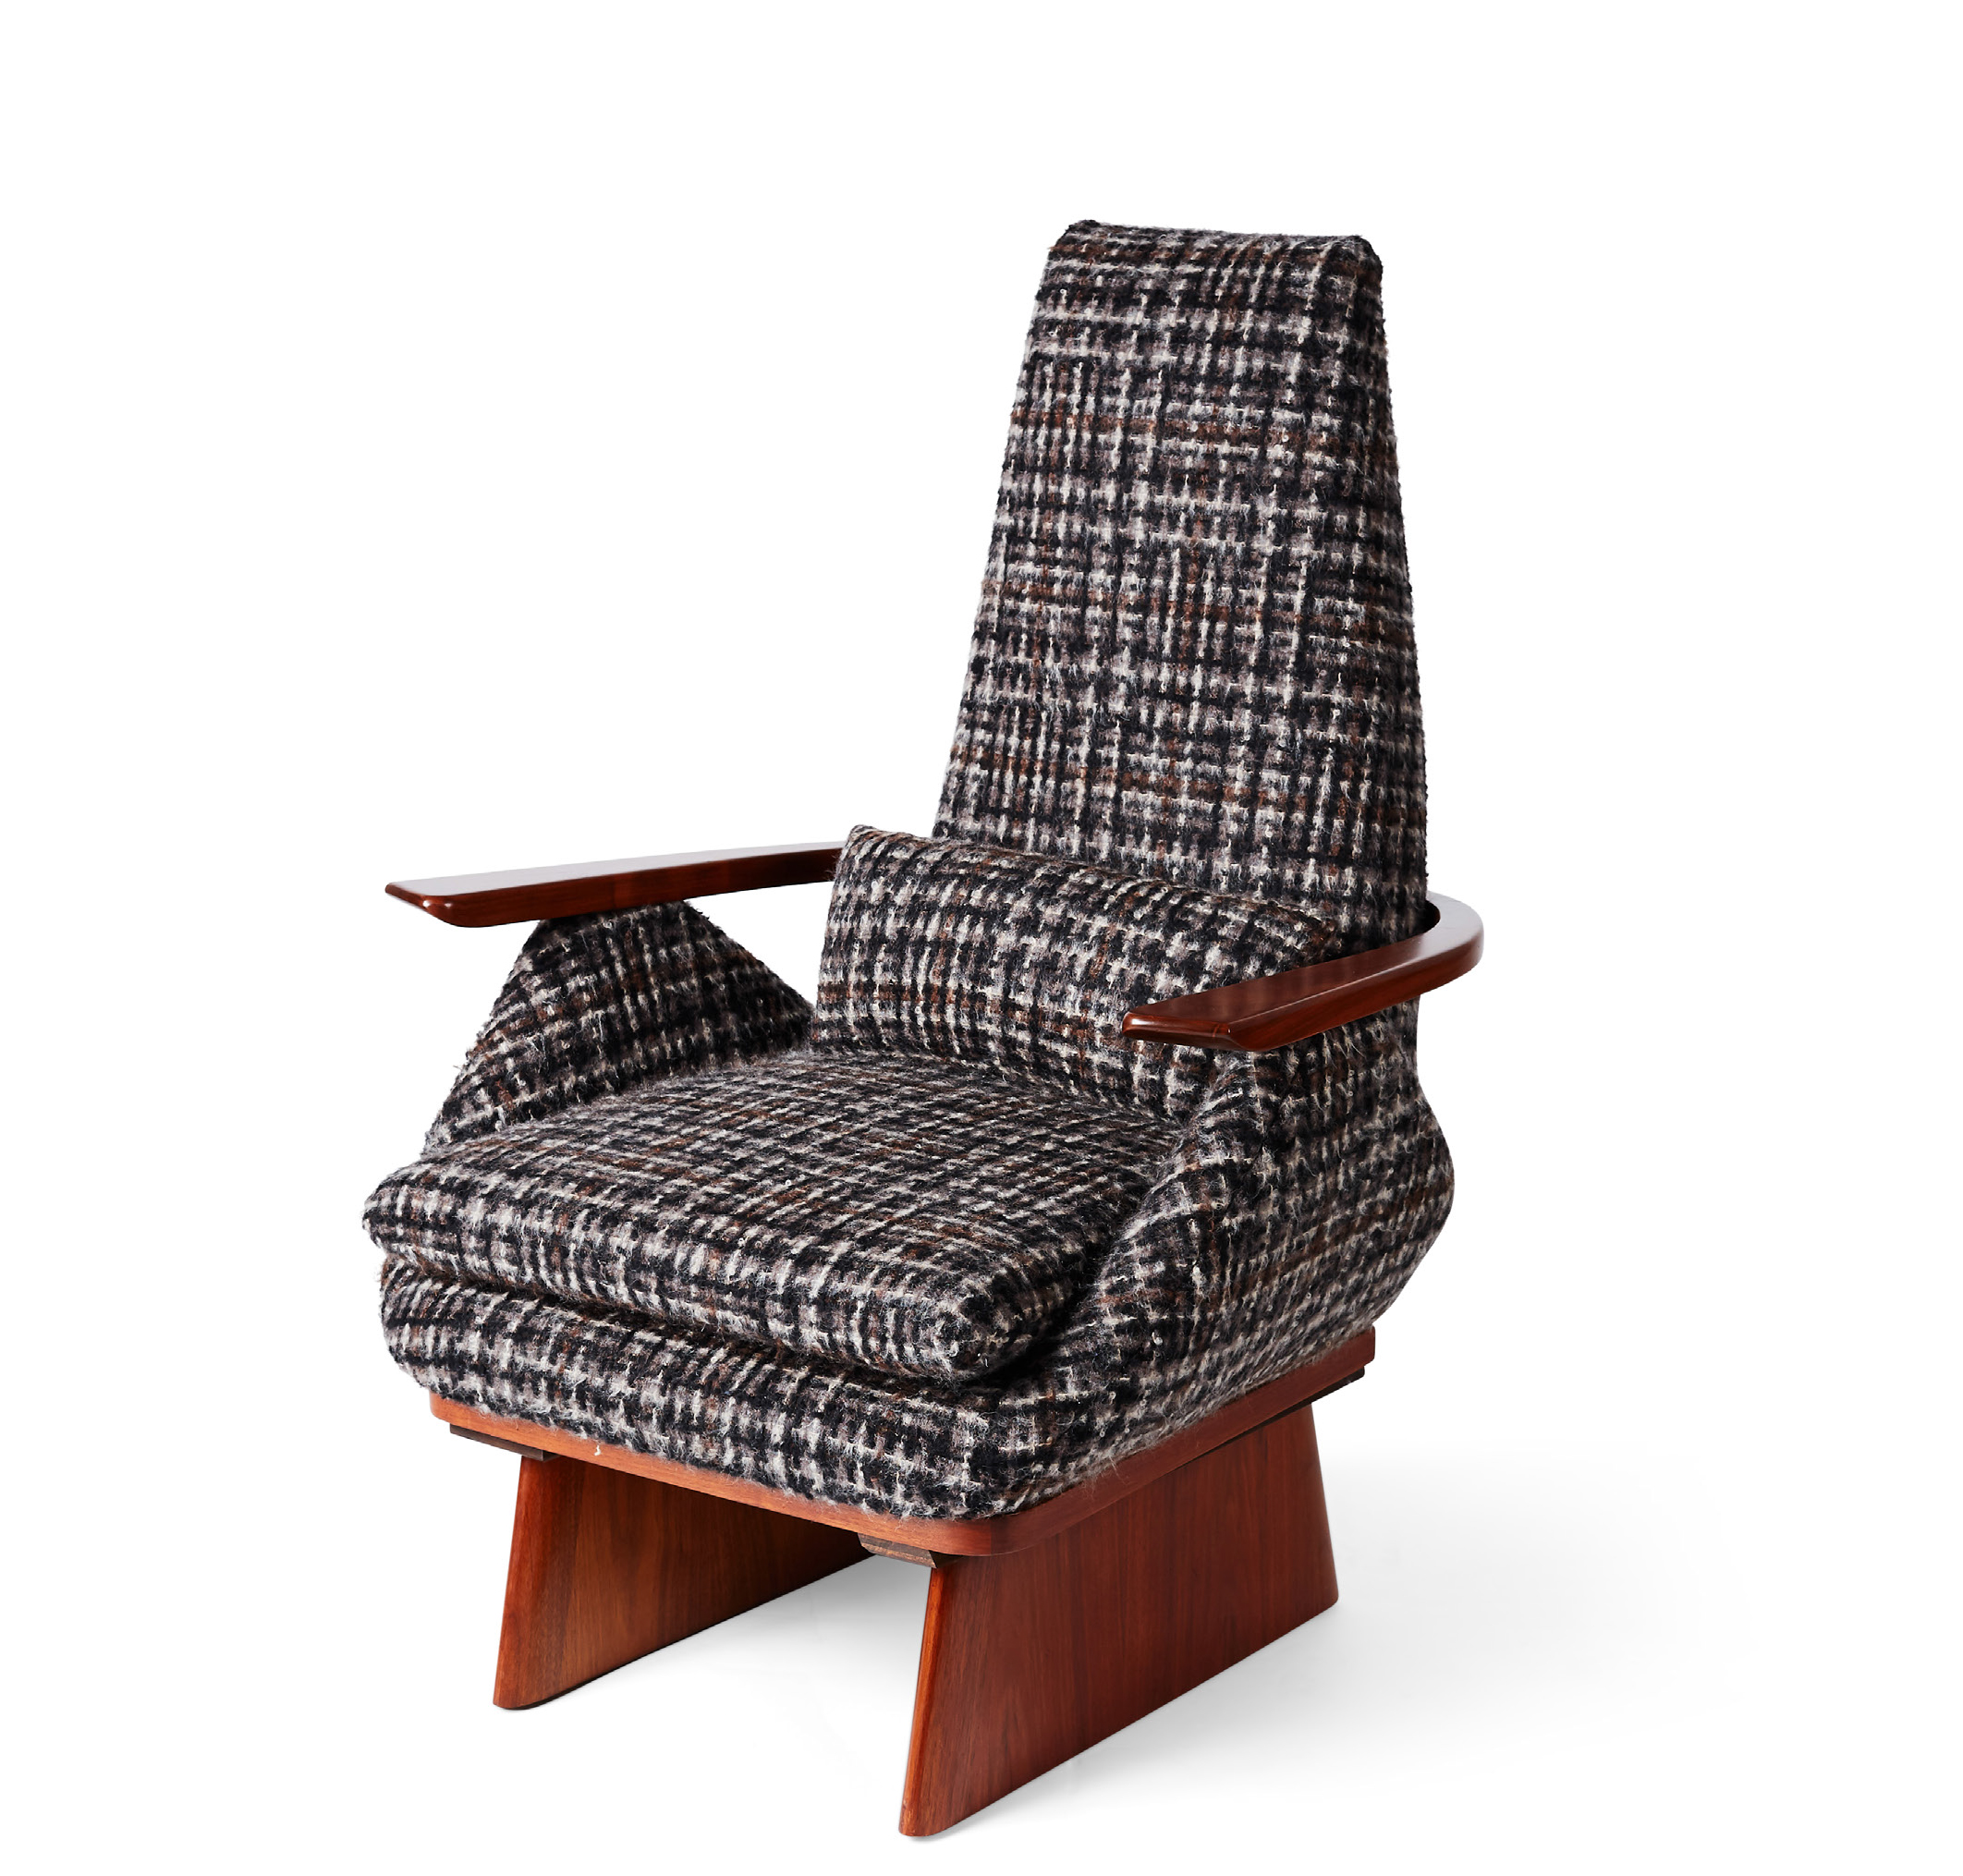 SledChair_SampsonBergmanStudio